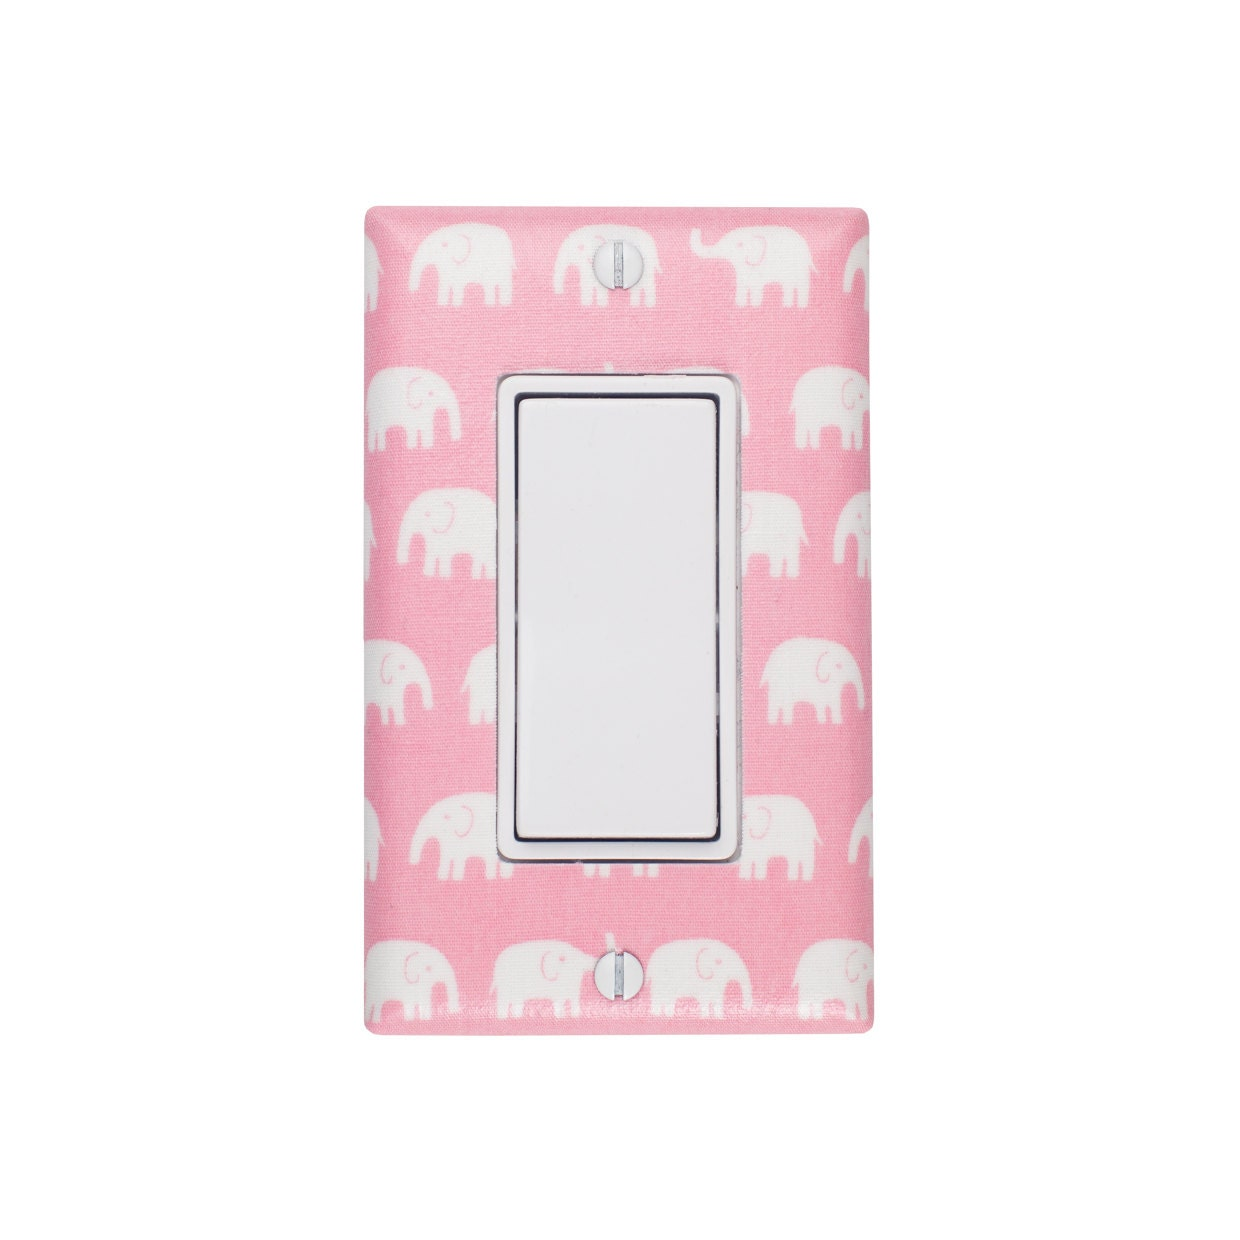 Pink Elephant Rocker Light Switch Plate Cover By Sskdesigns